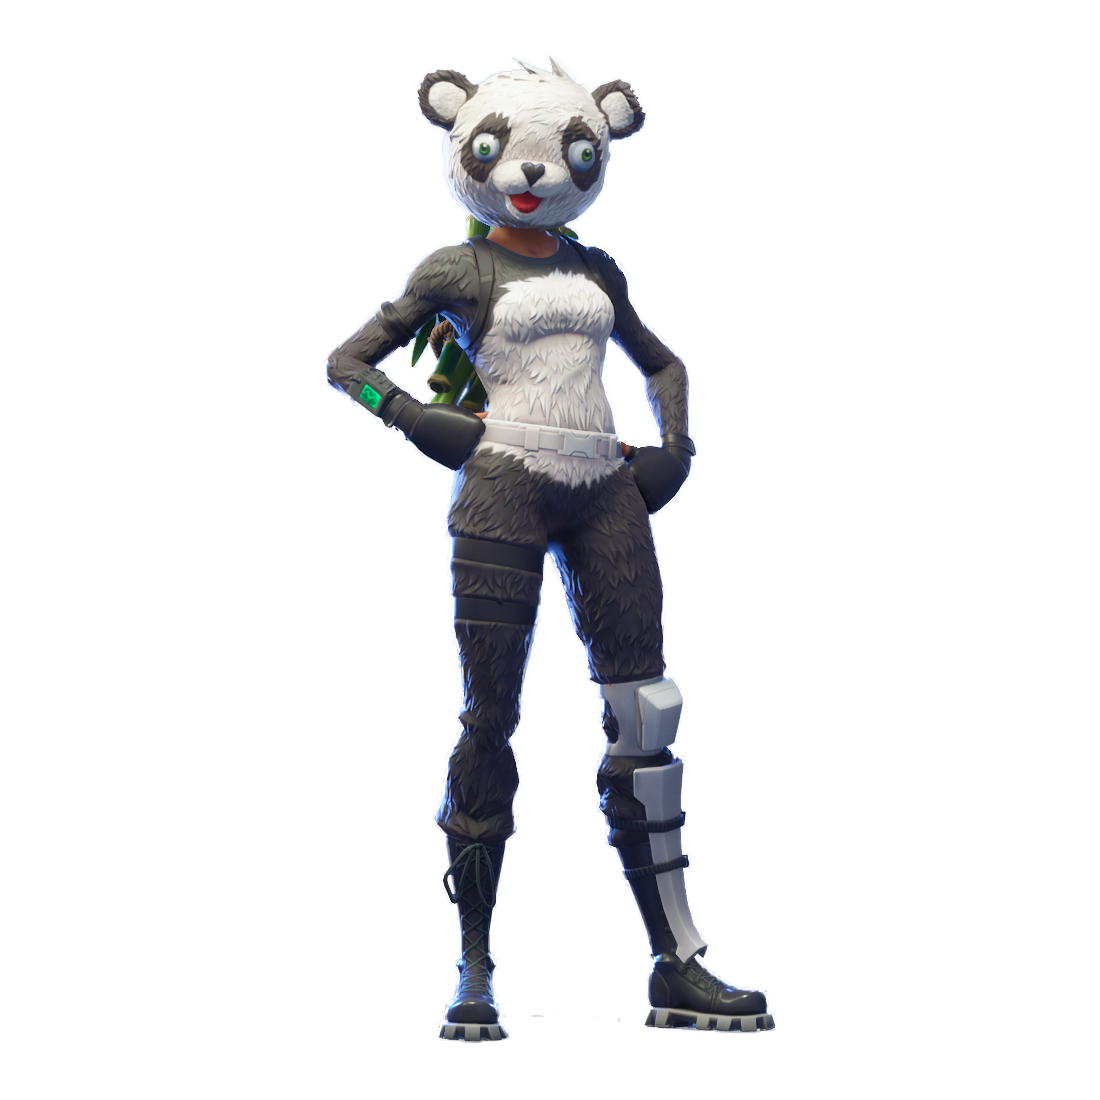 Fortnite P A N D A Team Leader Png Image For Free Download